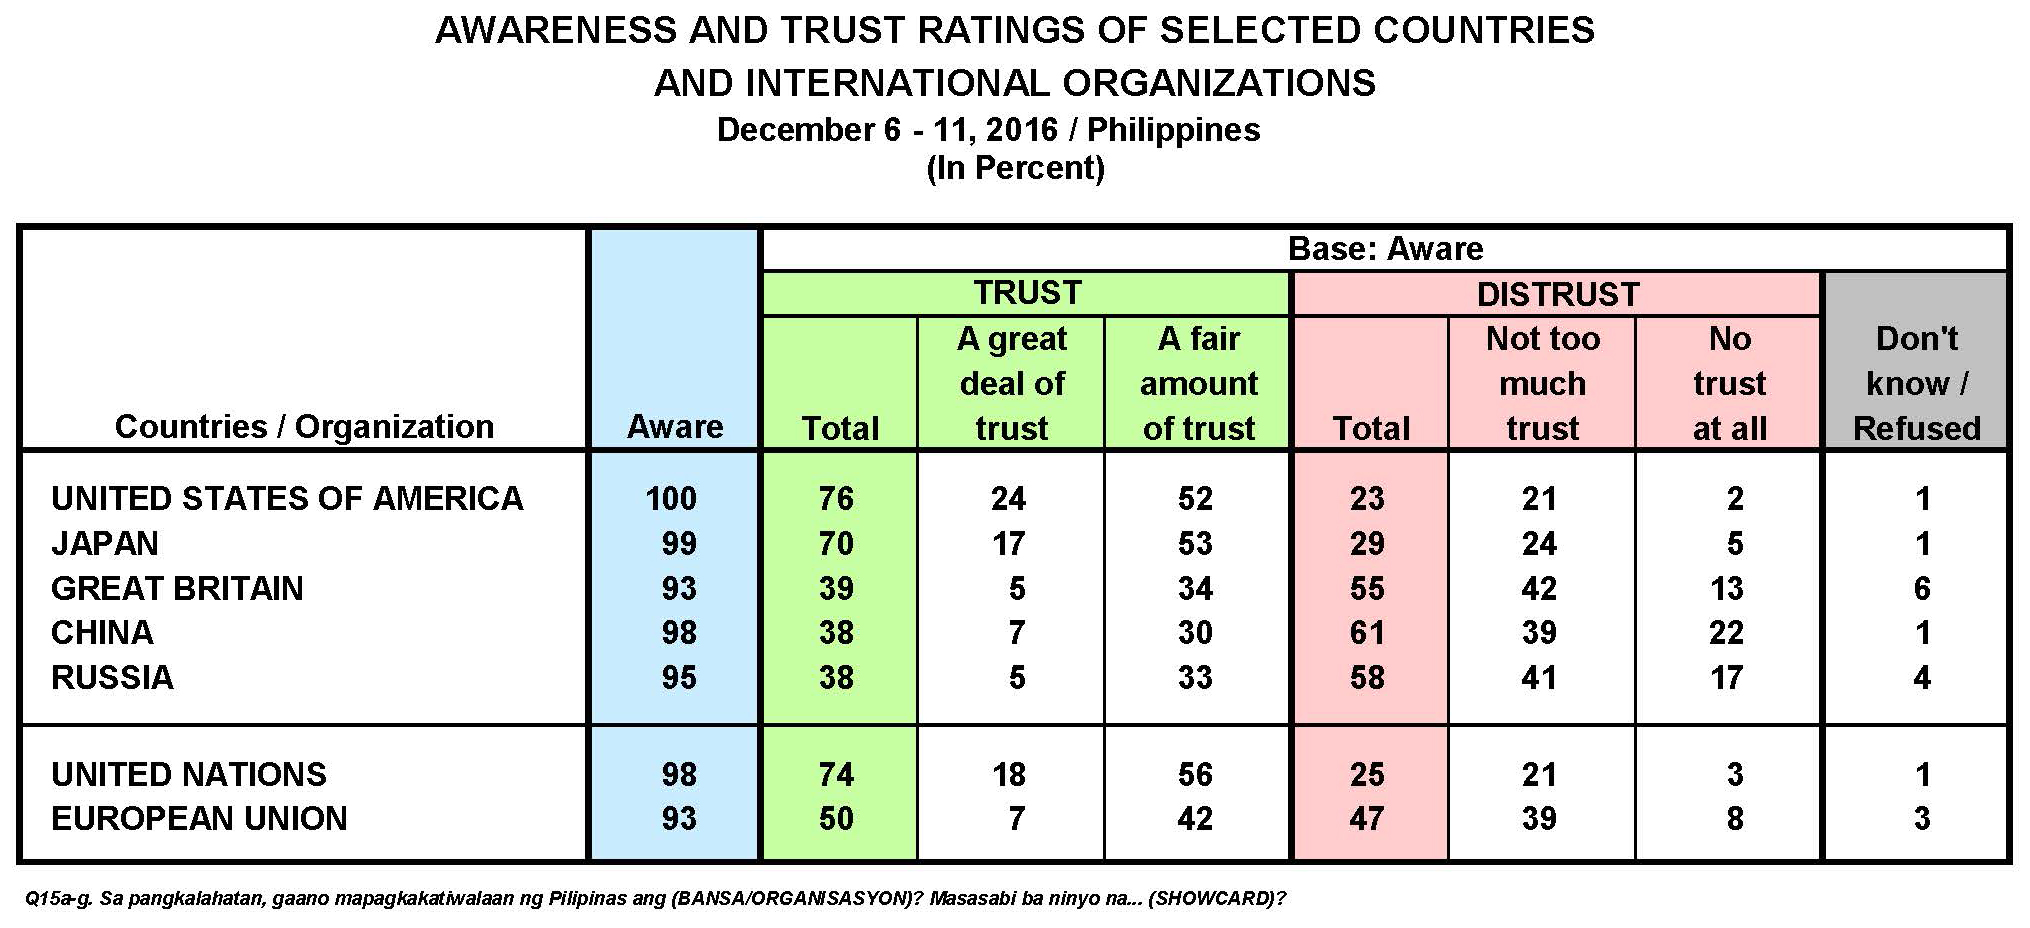 December 2016 Nationwide Survey on Public Trust in Selected Countries and International Organizations